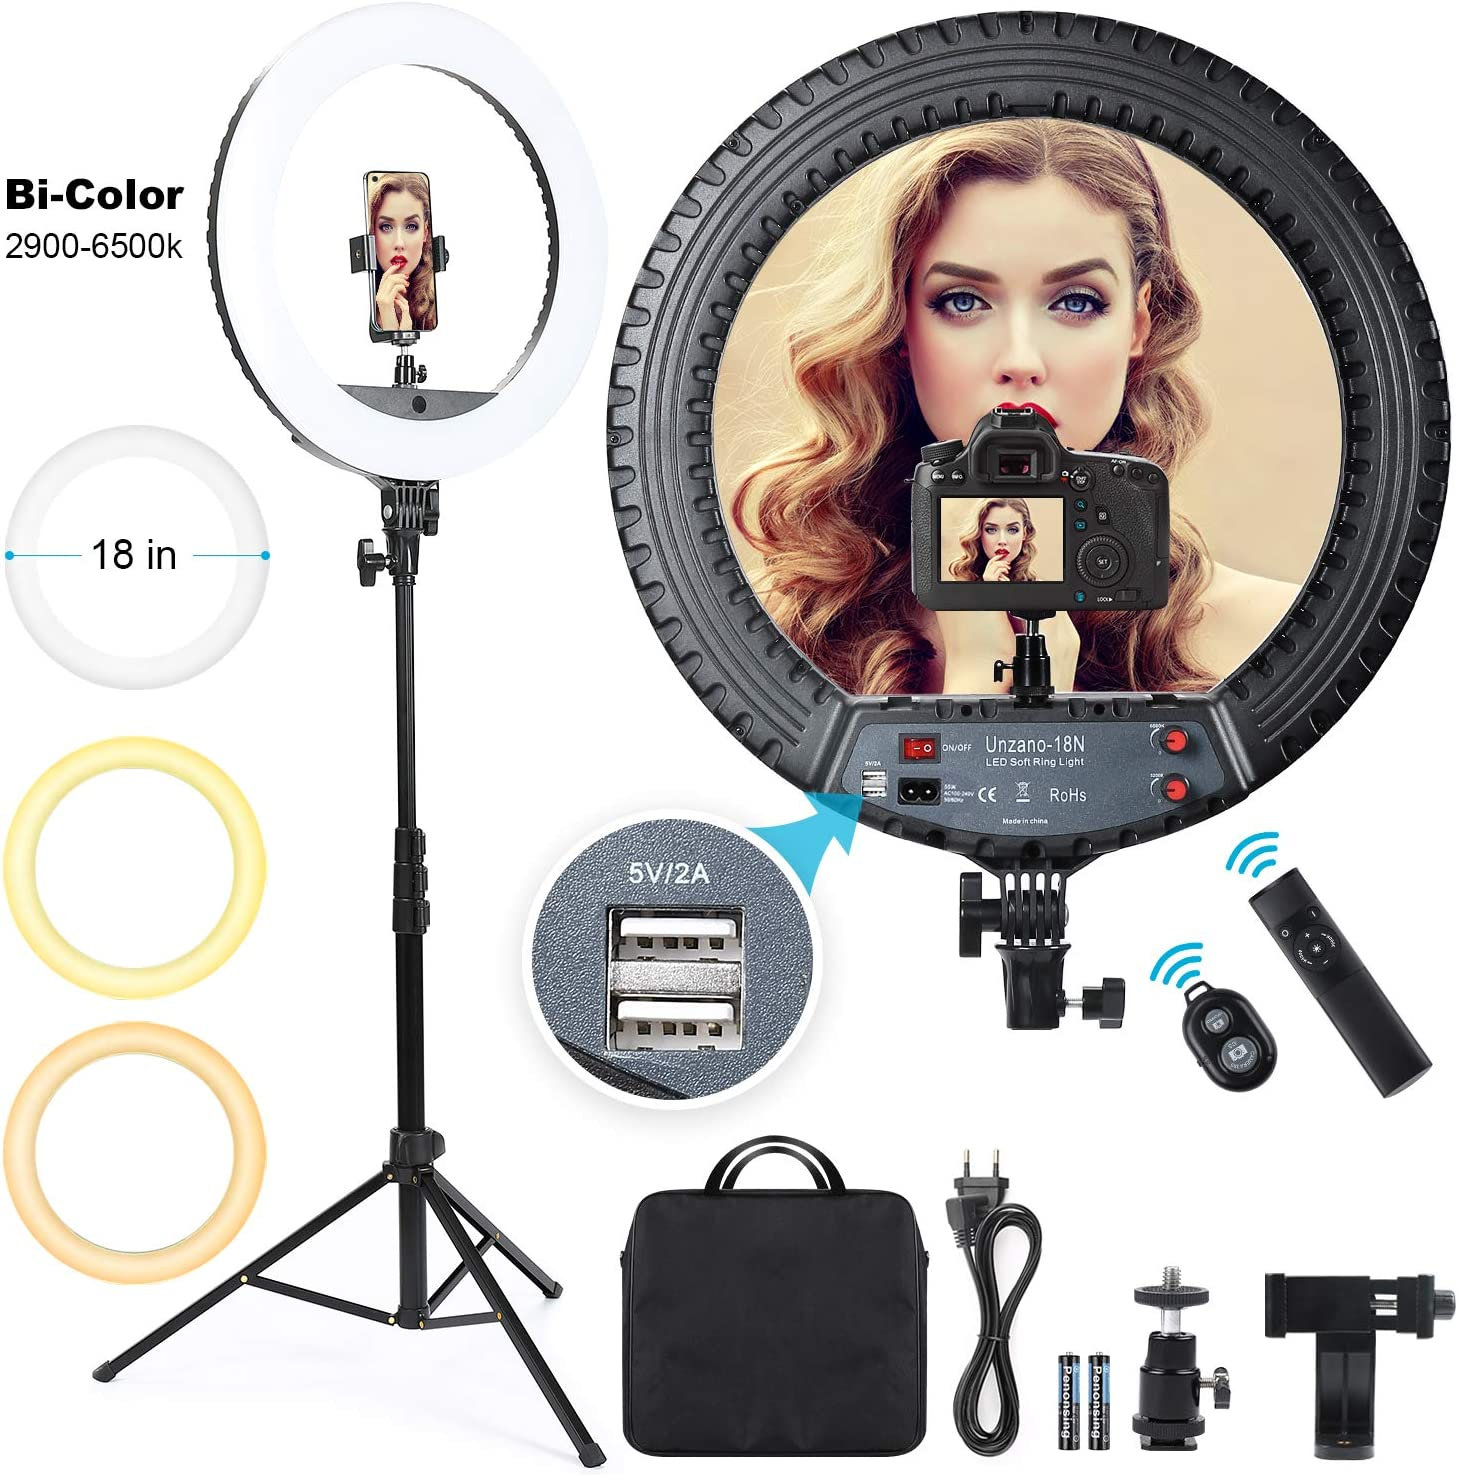 Ring Light 18 inch with Tripod Stand&Phone Holder,Outer 55W Remote Control 3000K-6500K Dimmable LED Ringlight kit for Live Streaming Makeup YouTube Video Camera Beauty Photography